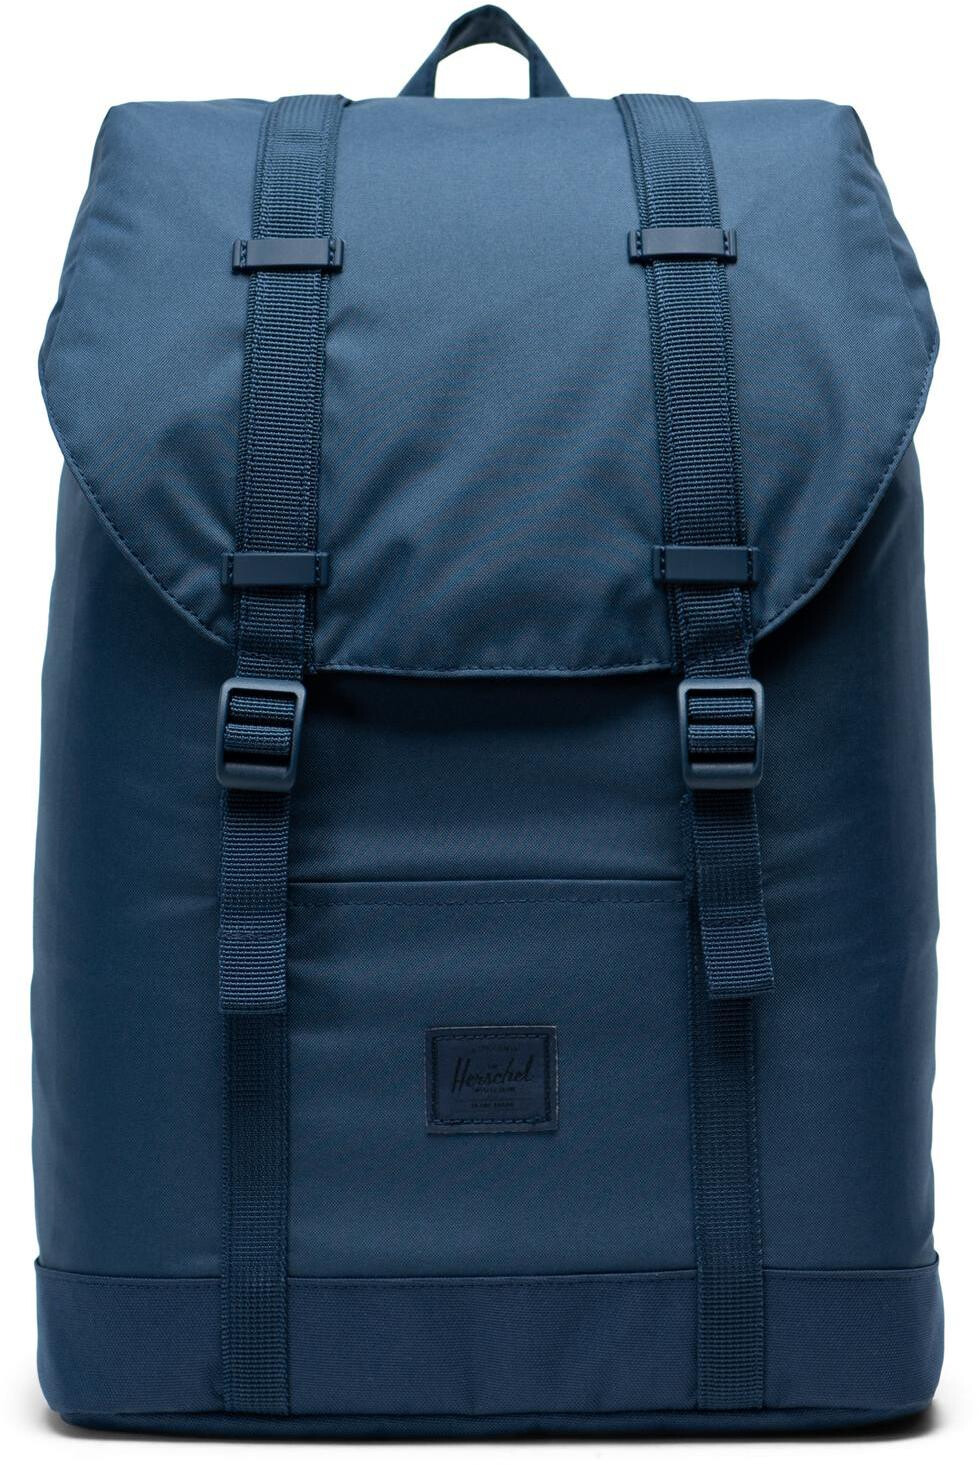 Herschel Retreat Mid-Volume Light Rygsæk, navy (2019) | Travel bags